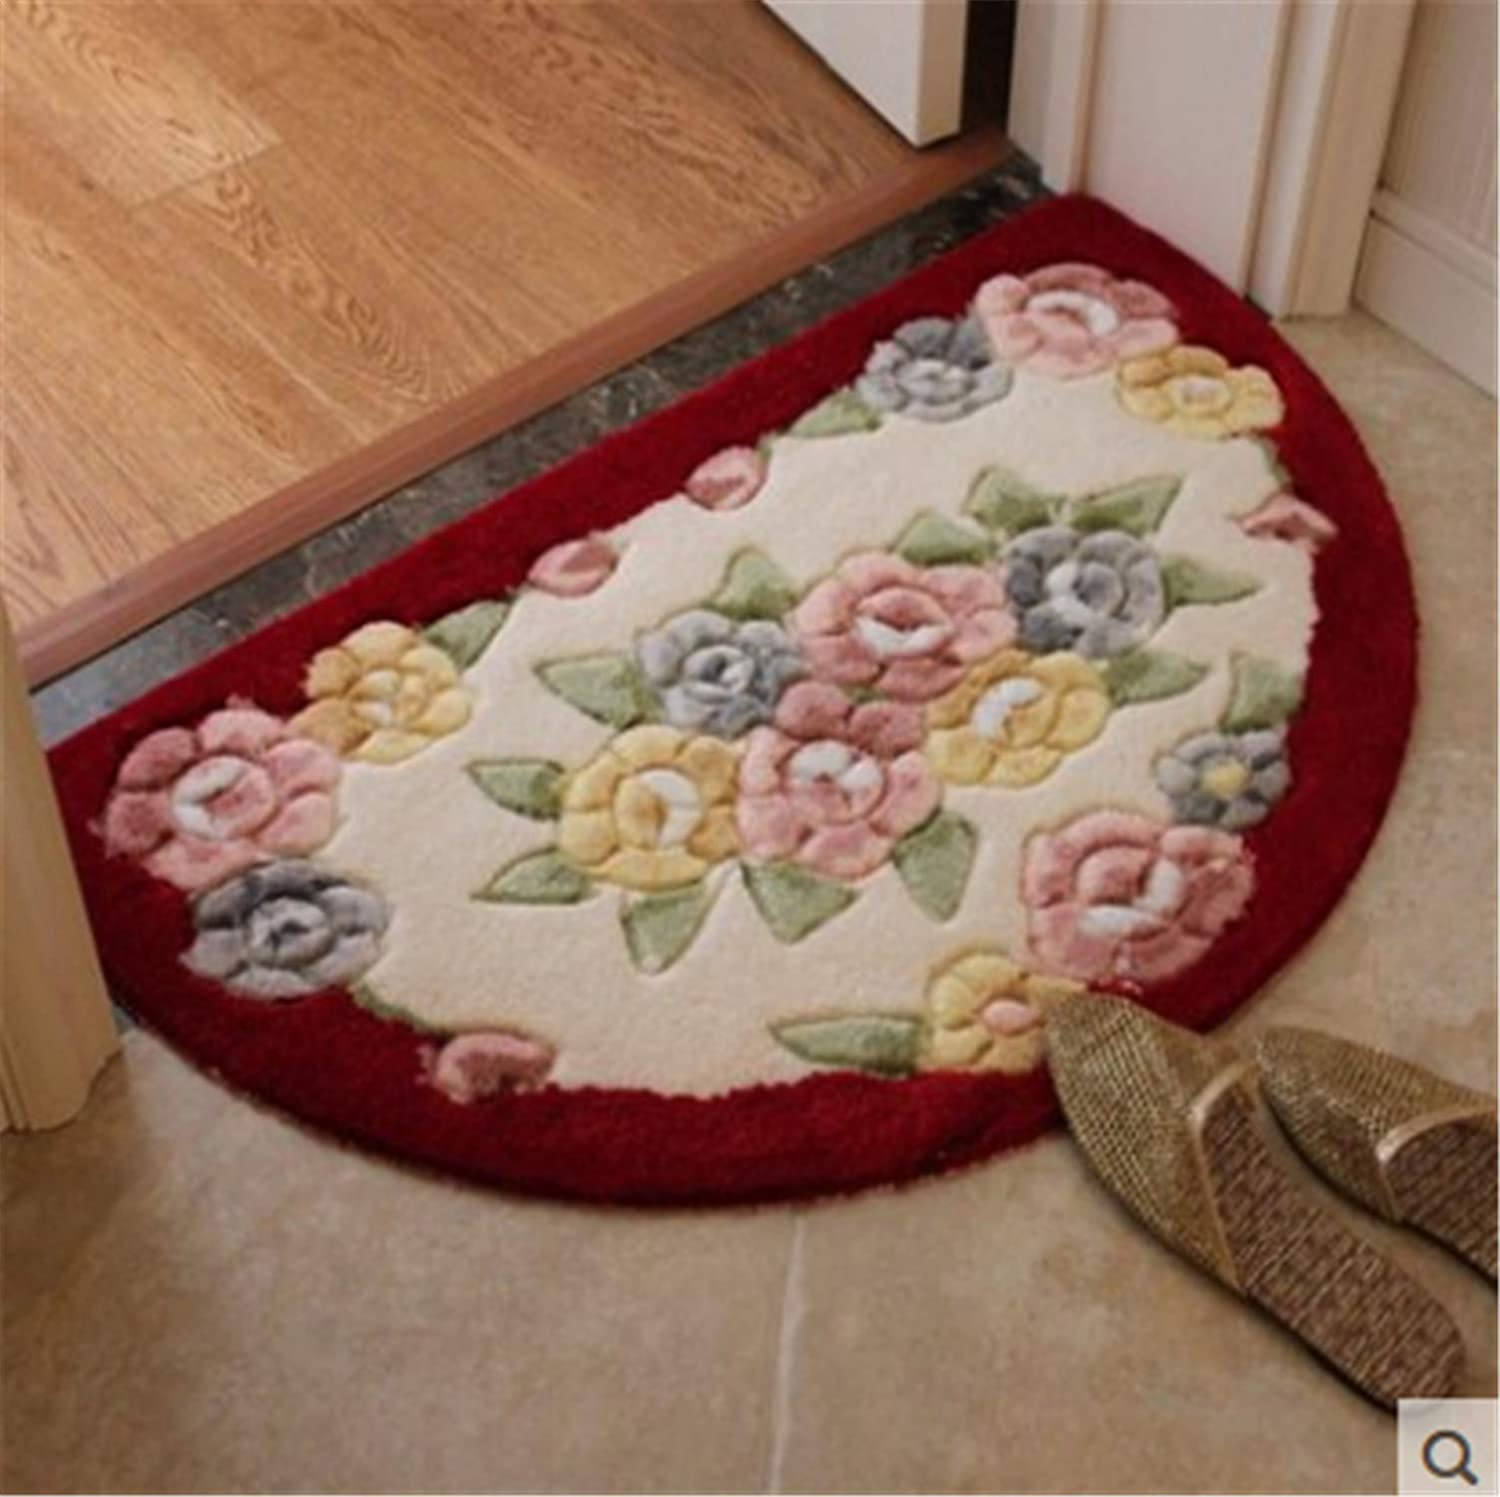 Flower Thick Door Mat Kid Room Carpet Area Rug for Bathroom Kitchen Home Non-Slip Door Mat 5 60x90cm